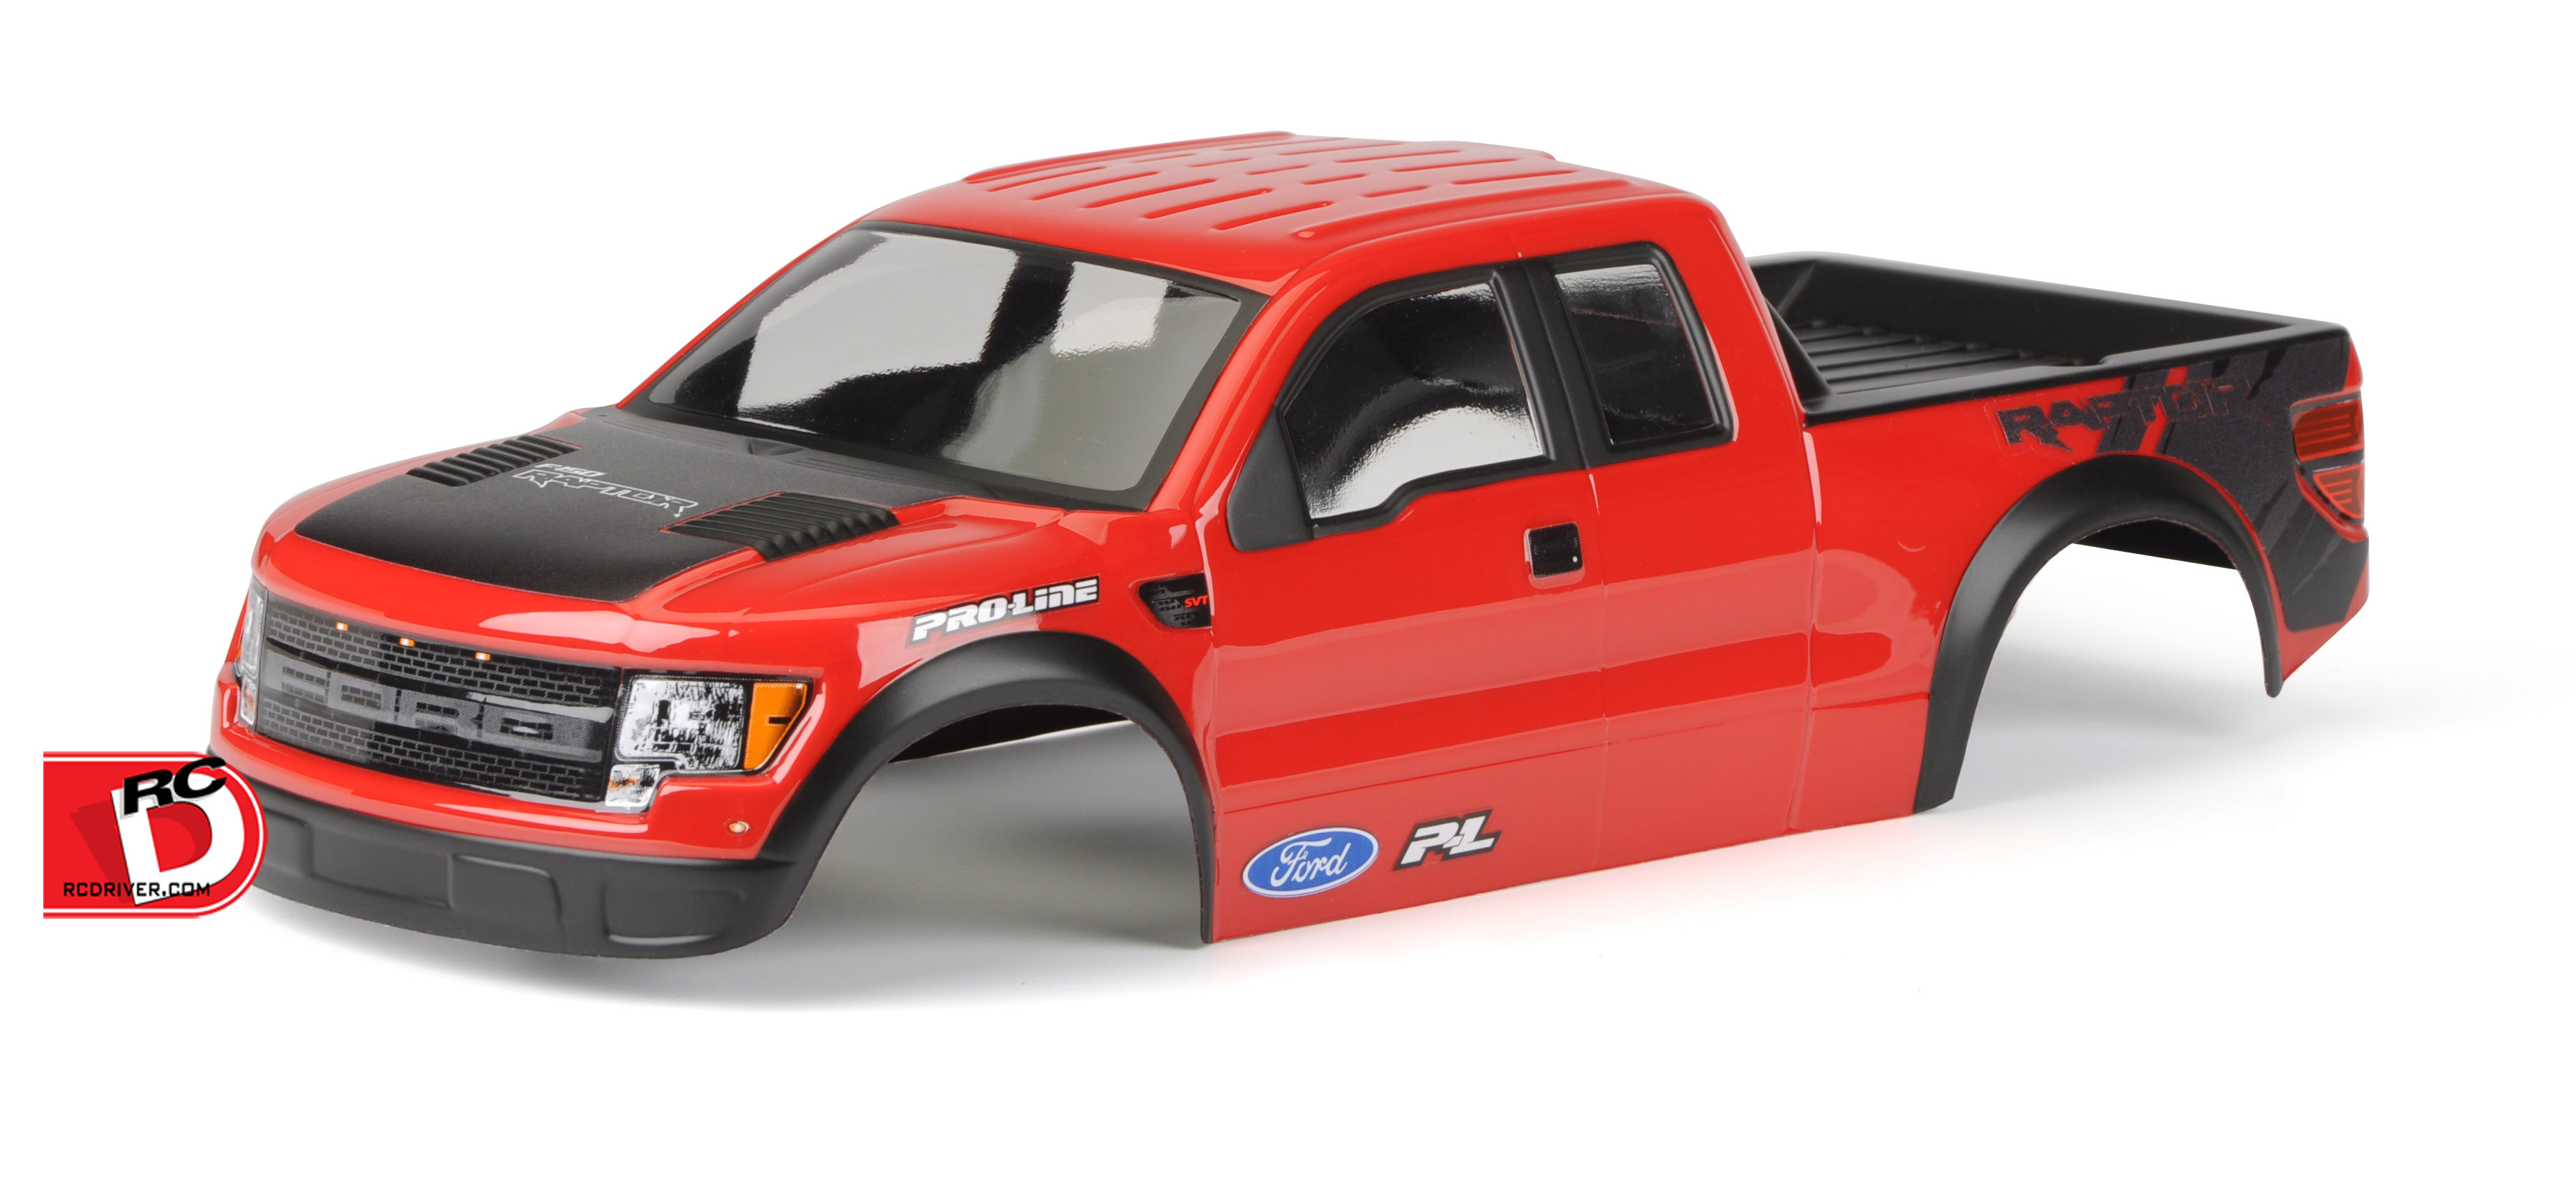 Pro-Line - Pre-Cut and Painted Ford F-150 Raptor SVT Body for the Stampede copy